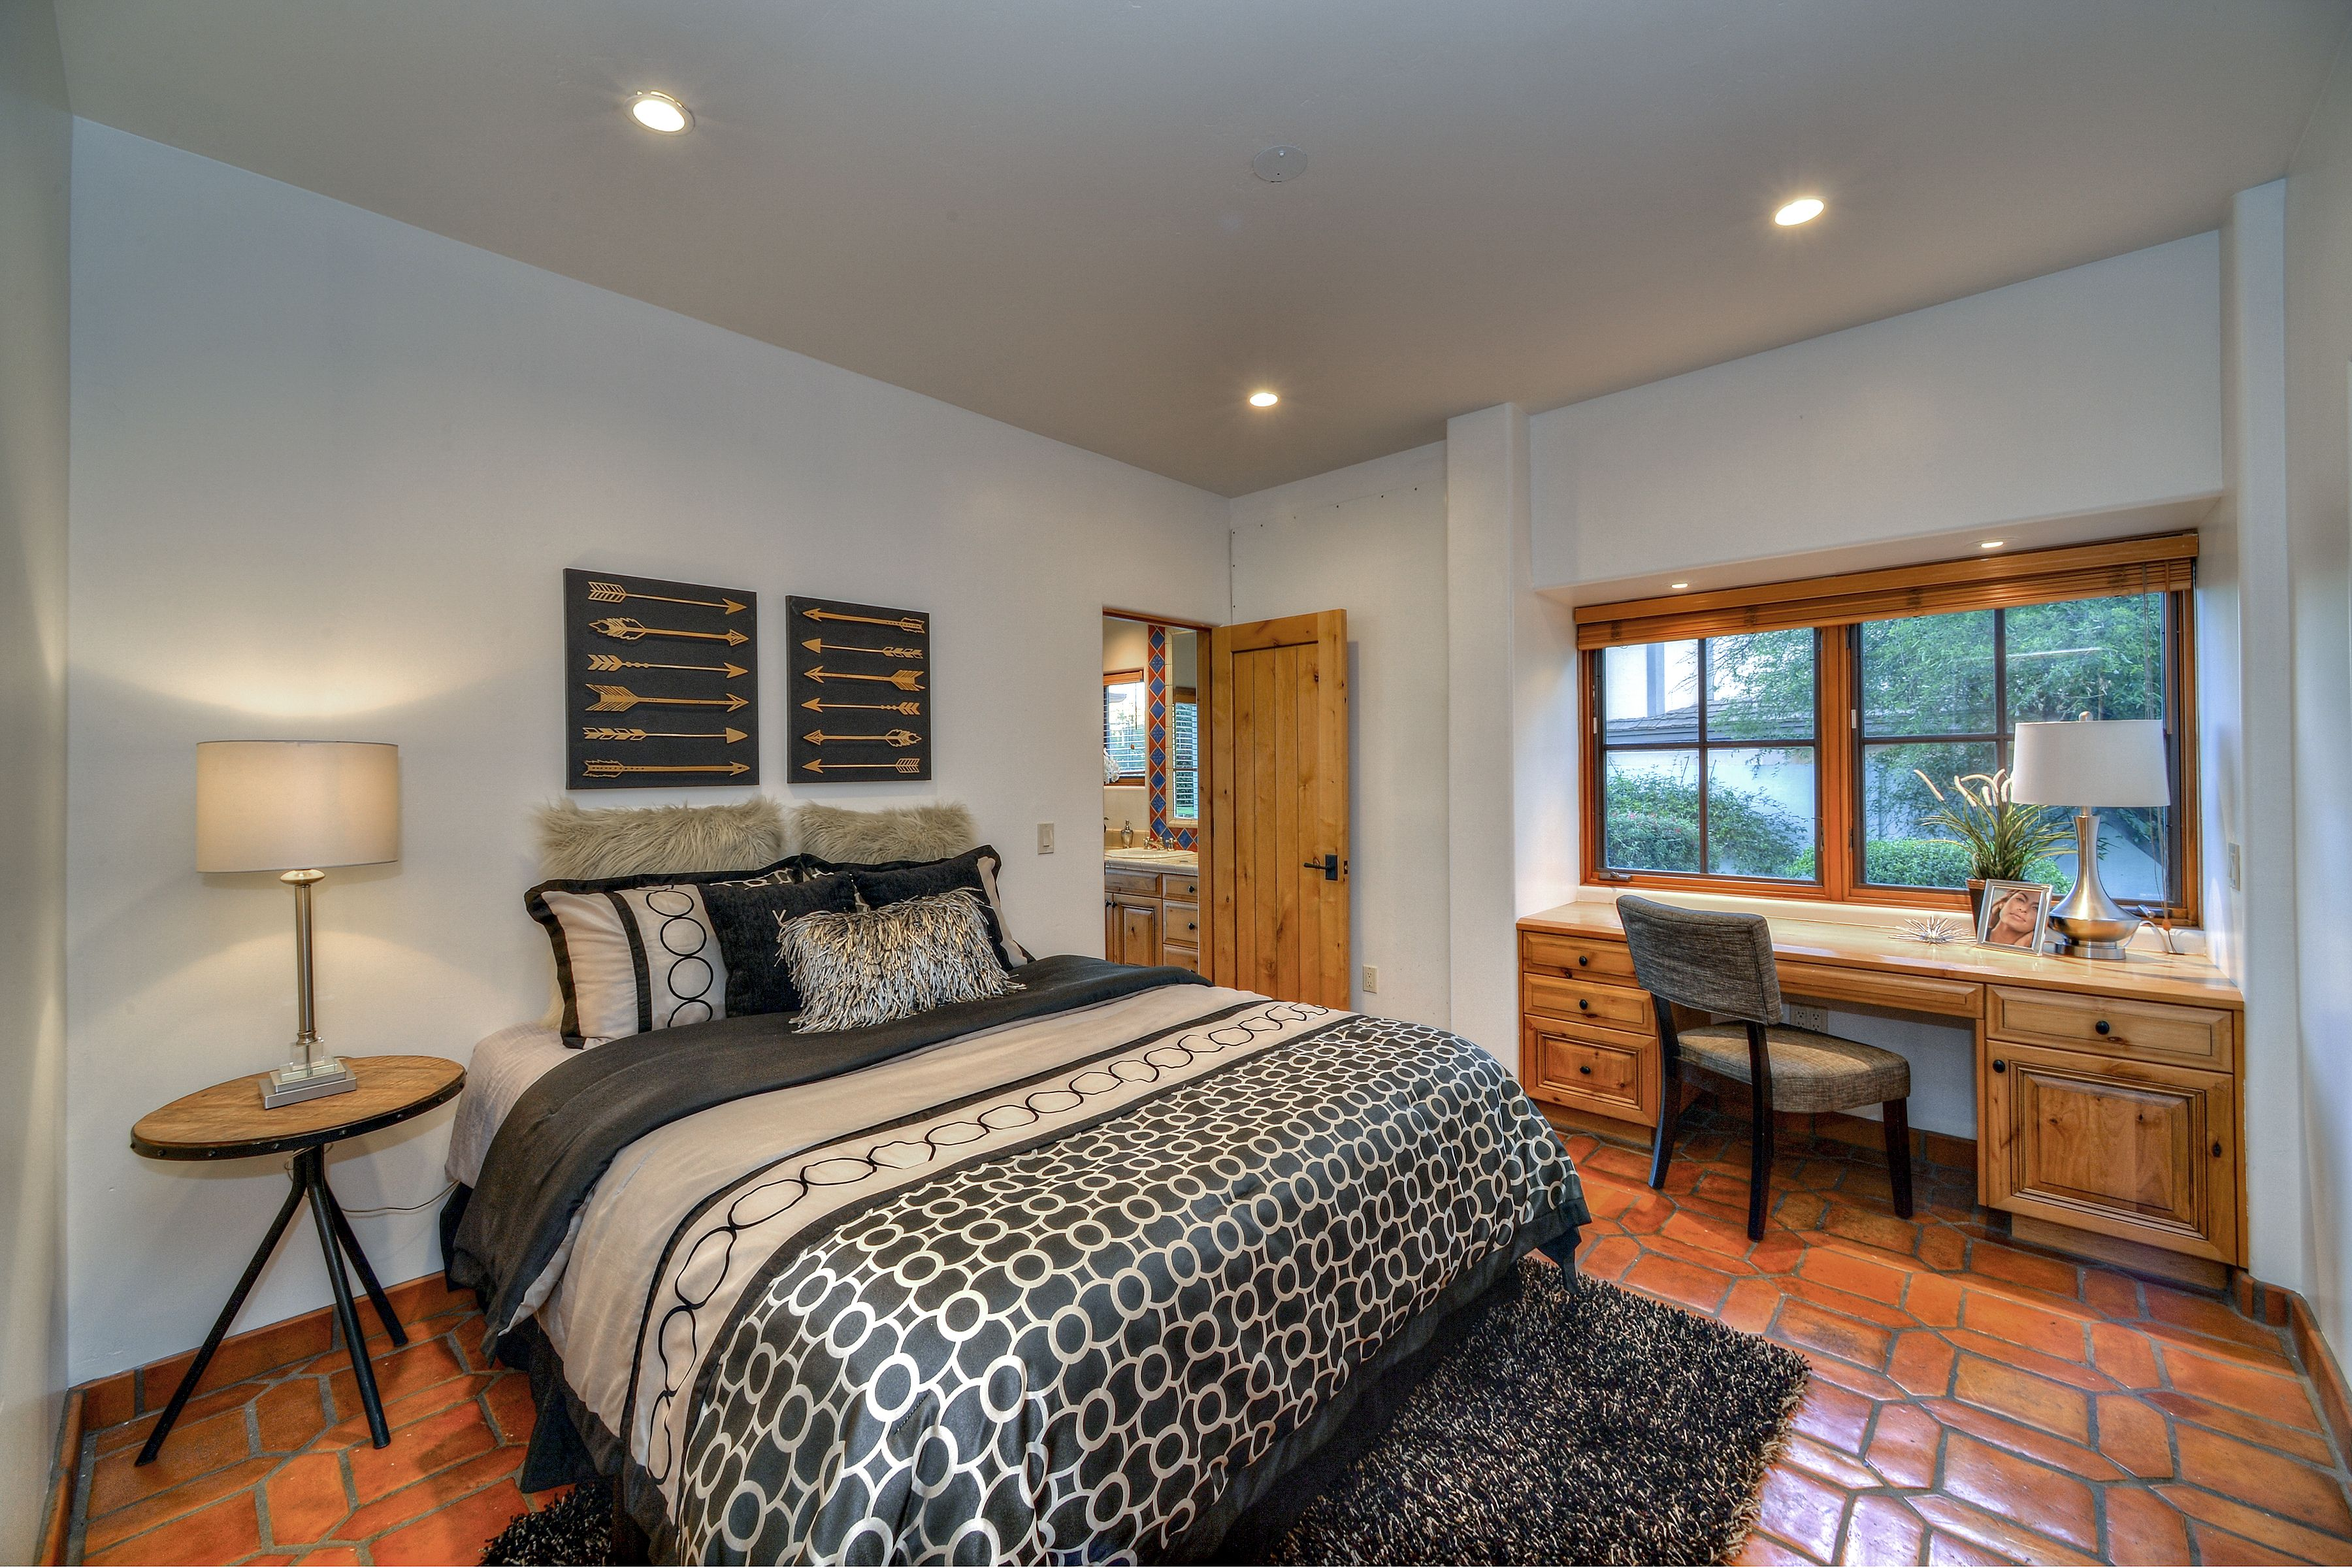 Staging homes. Home for sale. Arizona. Southwest. Bohemian